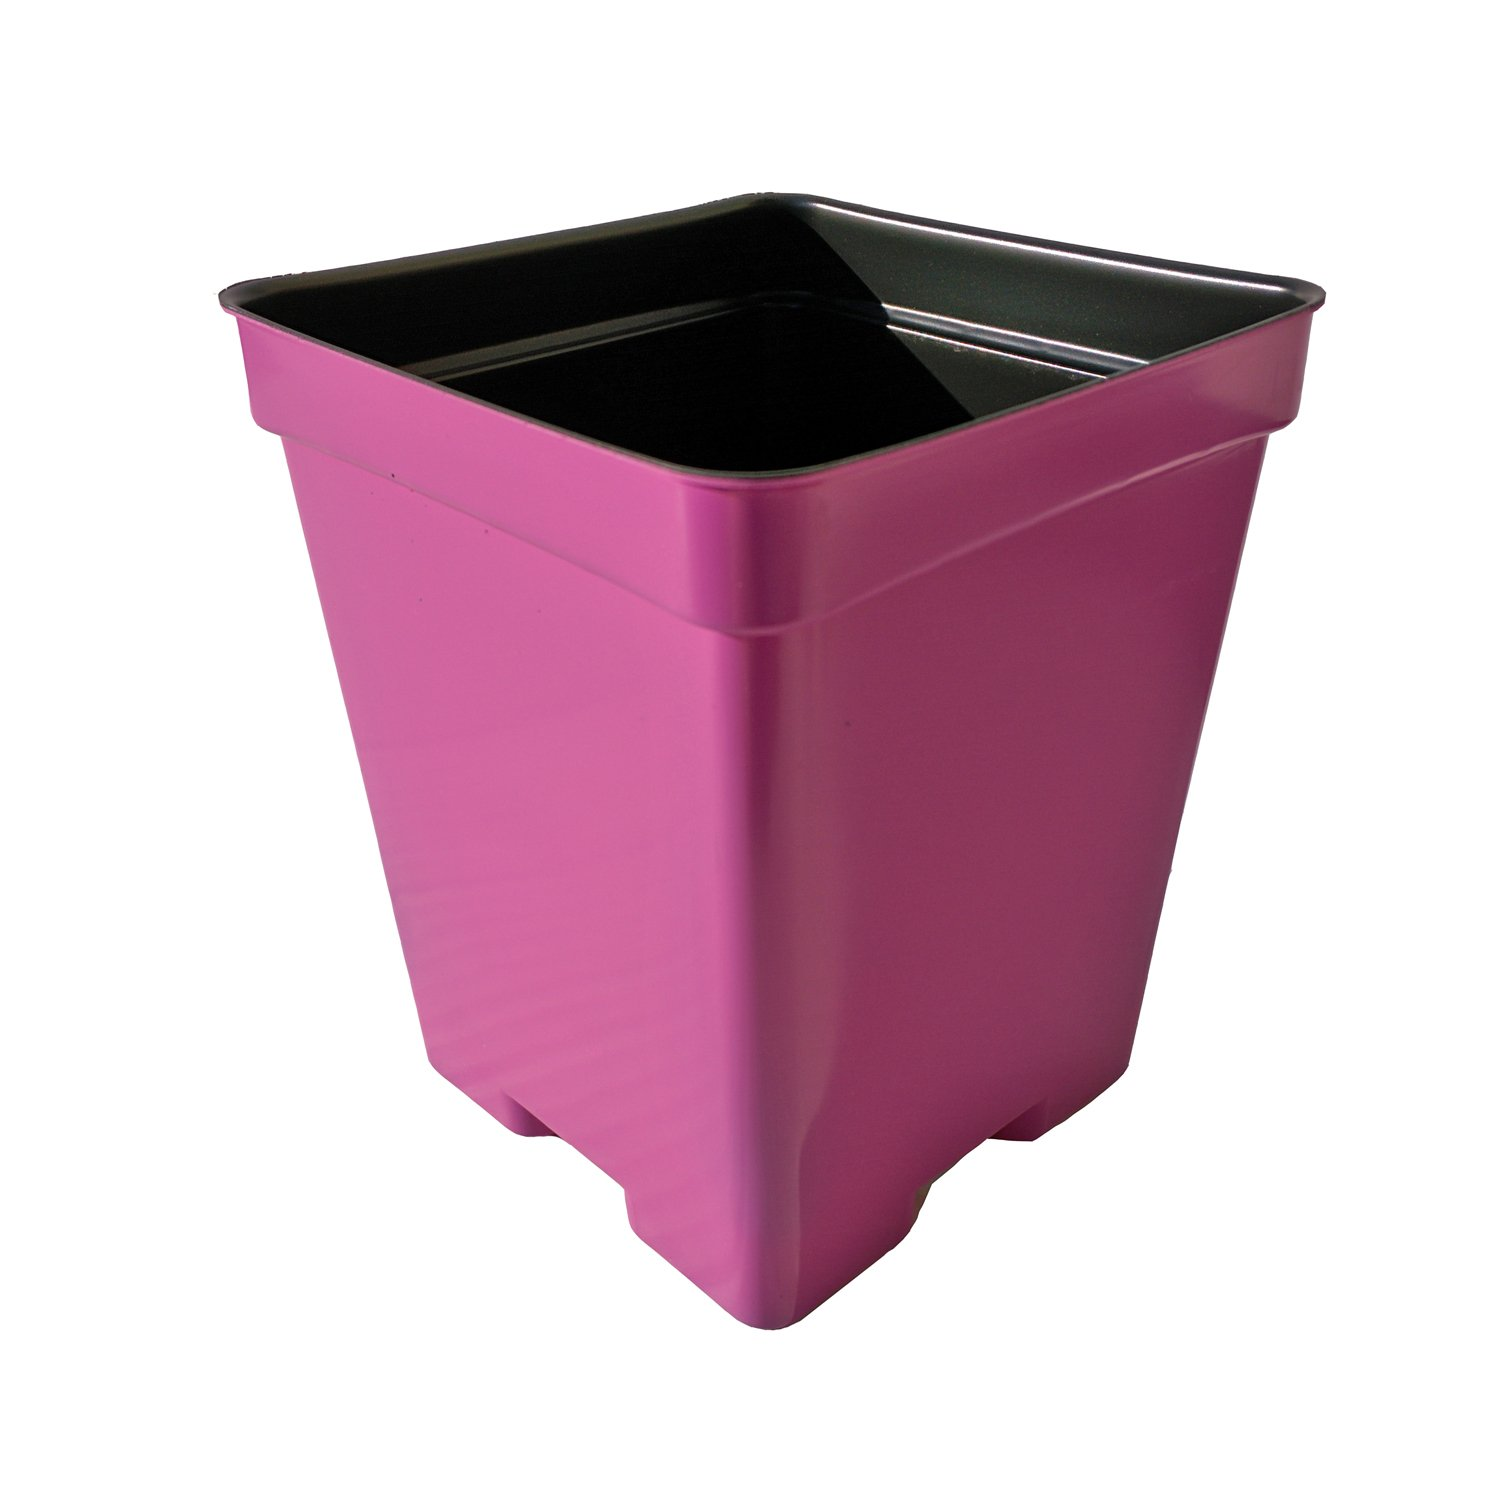 4 1/2 Inch Square Deep Press Fit Plastic Flower Pots - Made in USA Premium Quality, Reusable, Recyclable - Garden, Greenhouse, Seed Starting (Actual Dimensions 4.125'' Square By 5'' Deep) (Pink, 375)